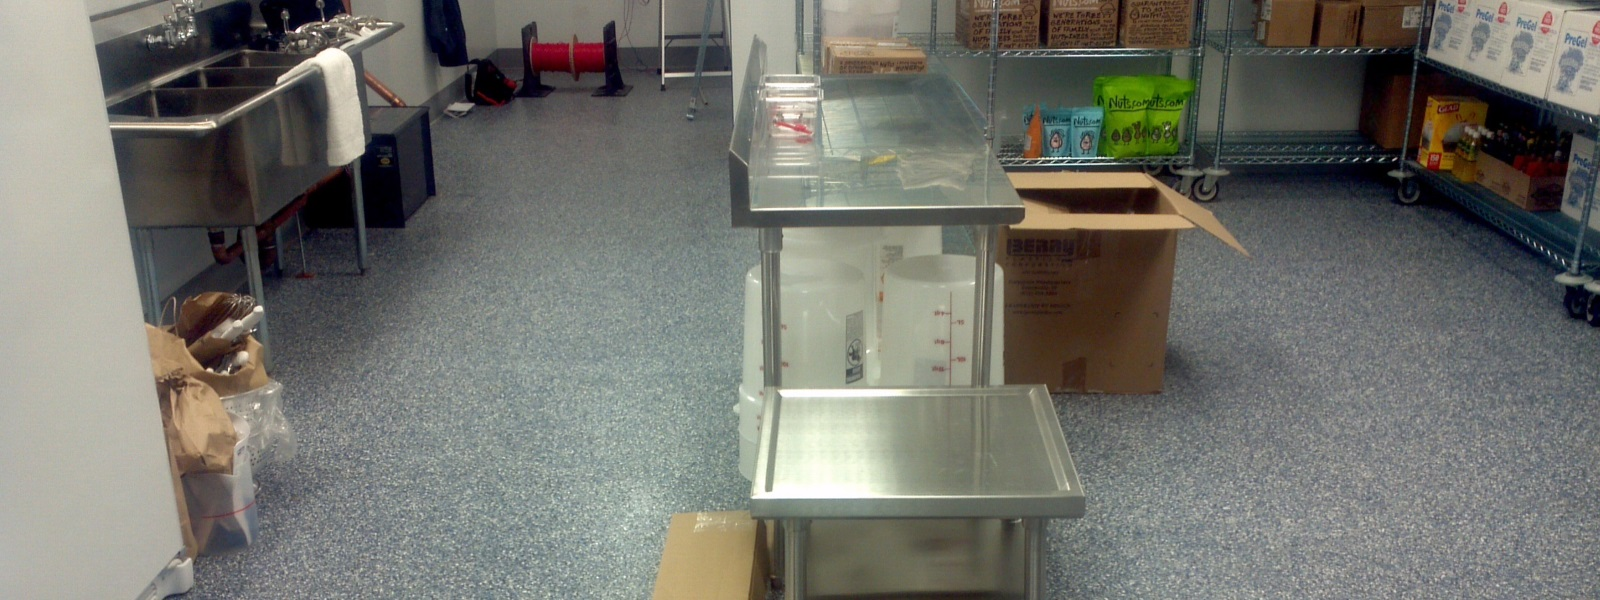 commercial kitchen floor coating kitchen floors delaware concrete coatings 5612